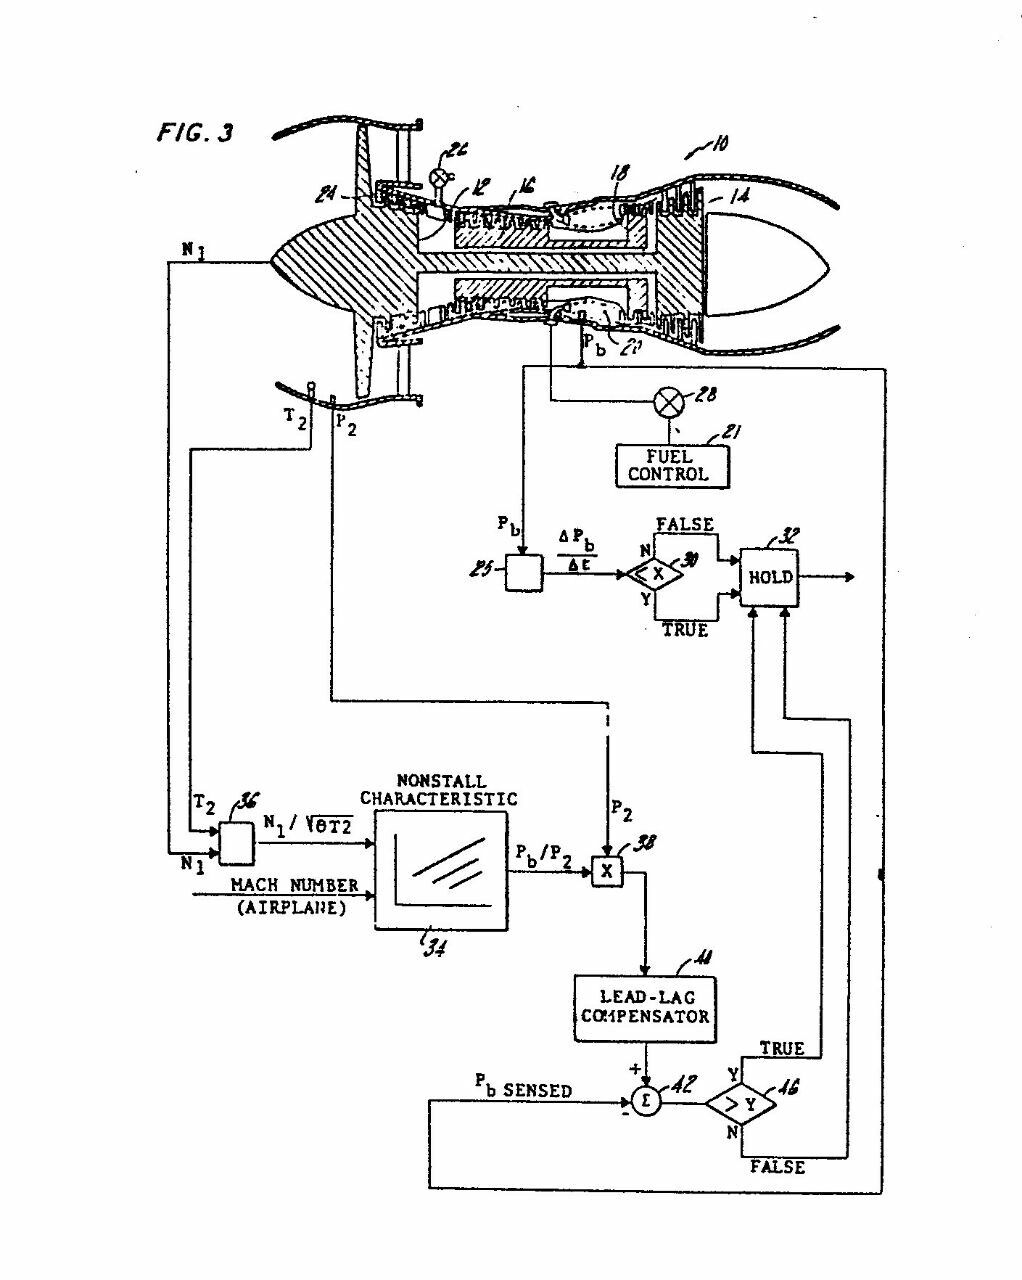 Patent us4716723 fuel controls for gas turbine engines patents cut away exploded and cool pictures pinterest gas turbine engine and